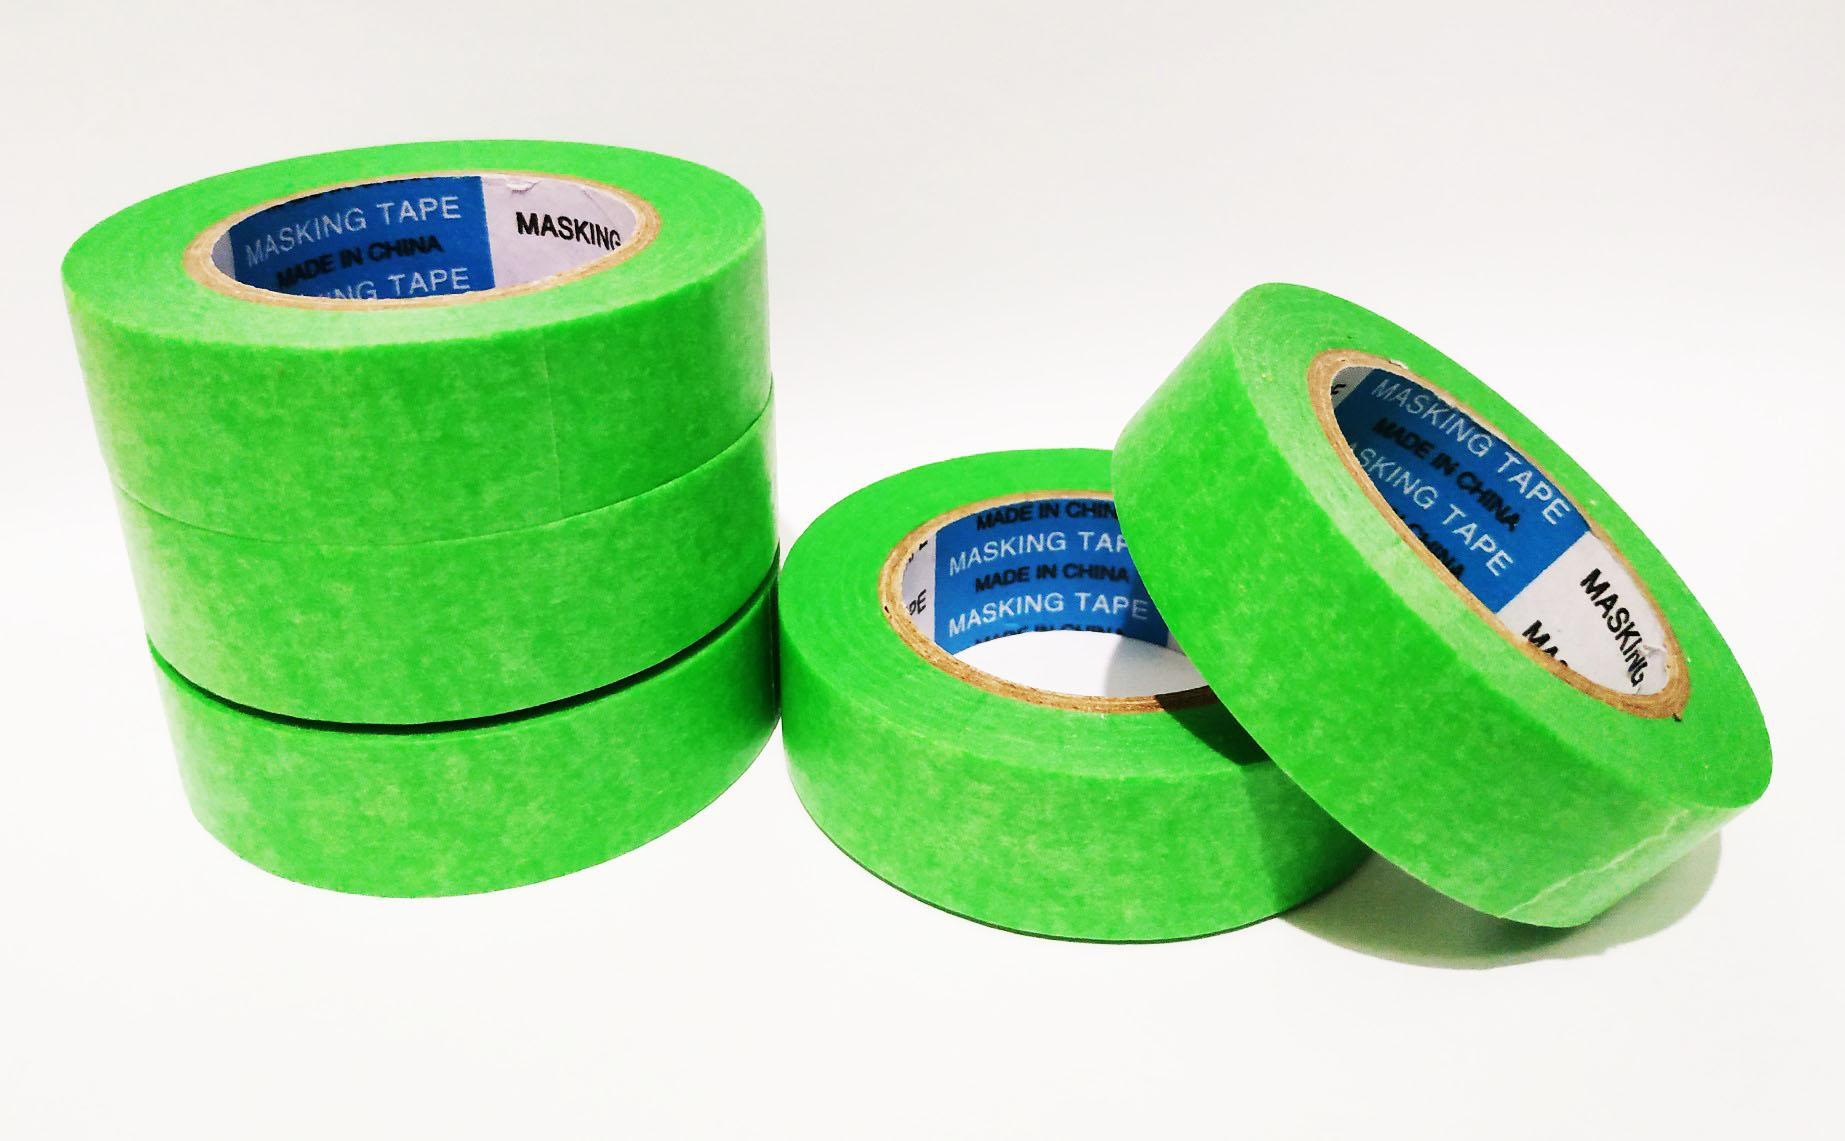 18mm x 18m Detailing Tape Painters Tape Washi Tape 1 roll